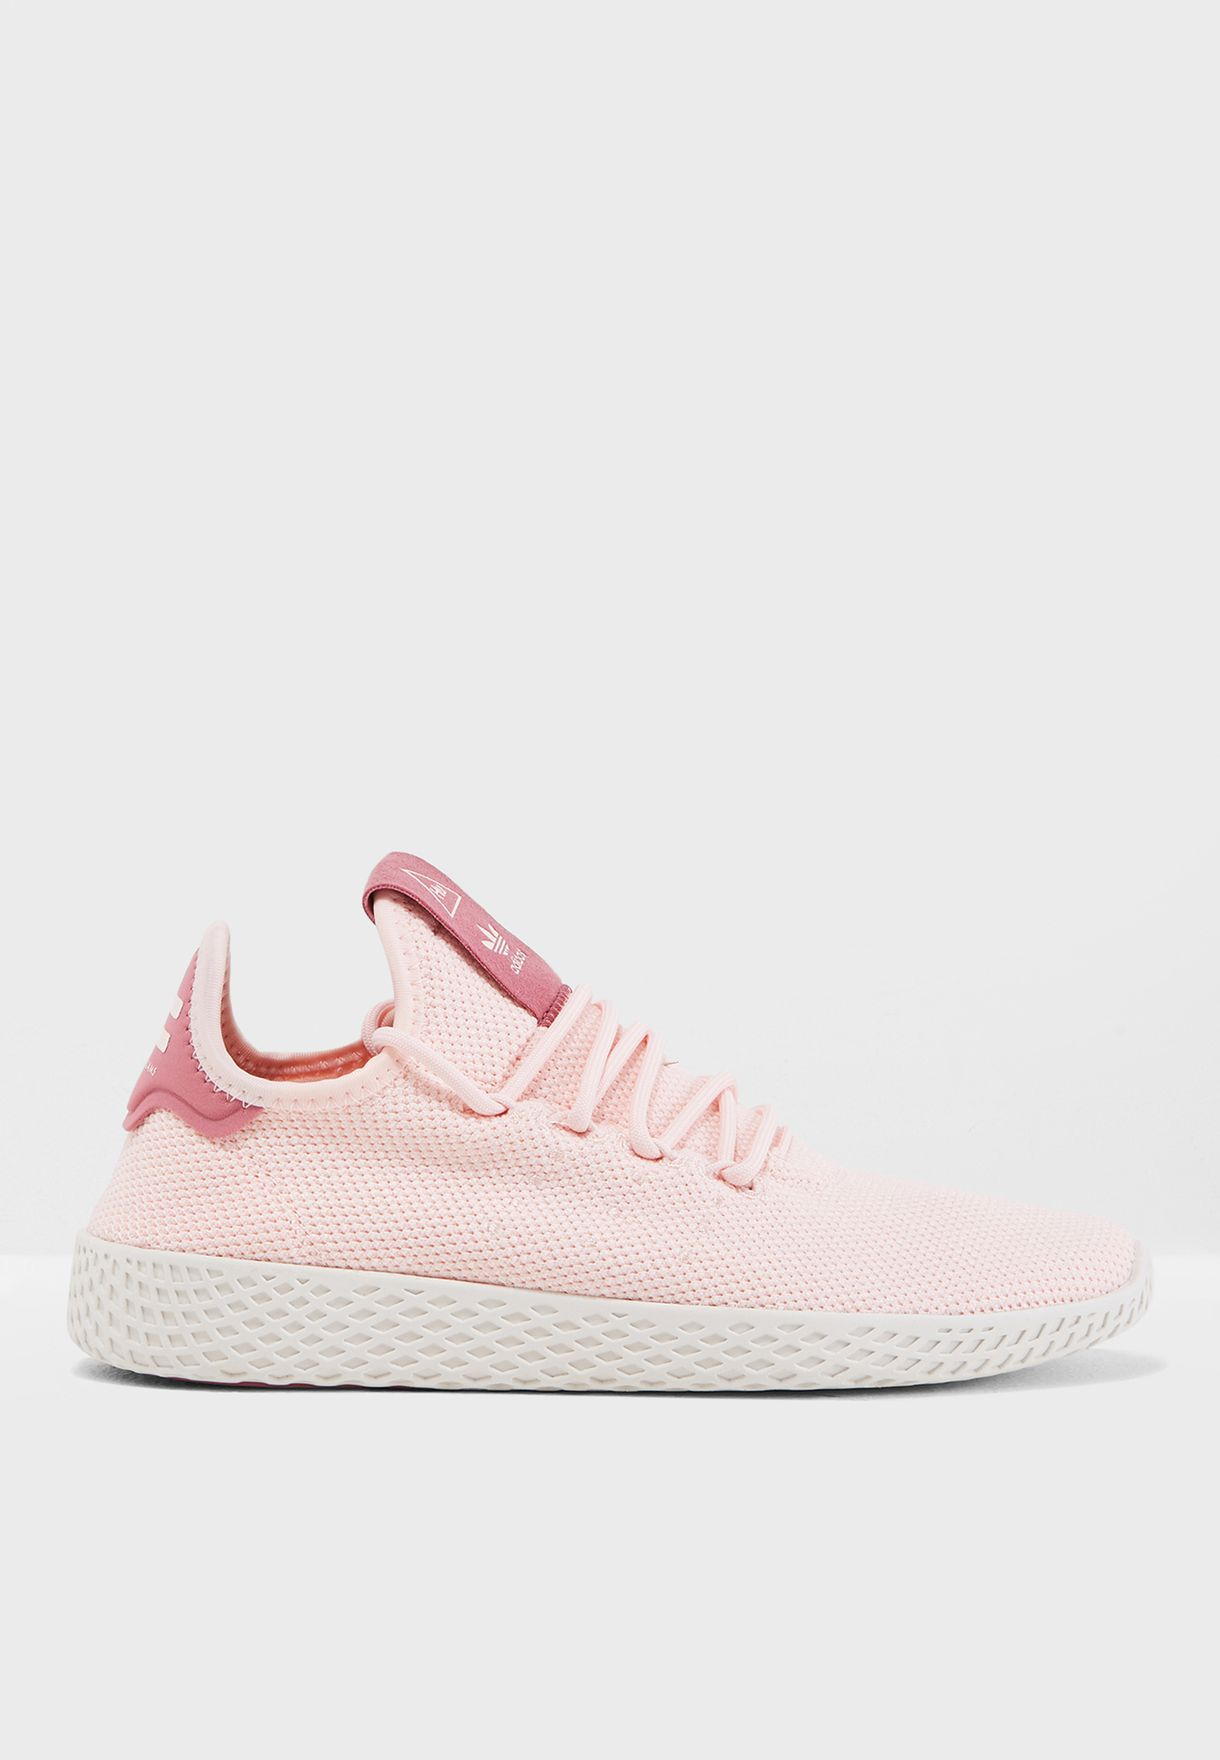 fcc71a32f40a9 Shop adidas Originals pink Pharrell Williams Tennis Hu AQ0988 for ...